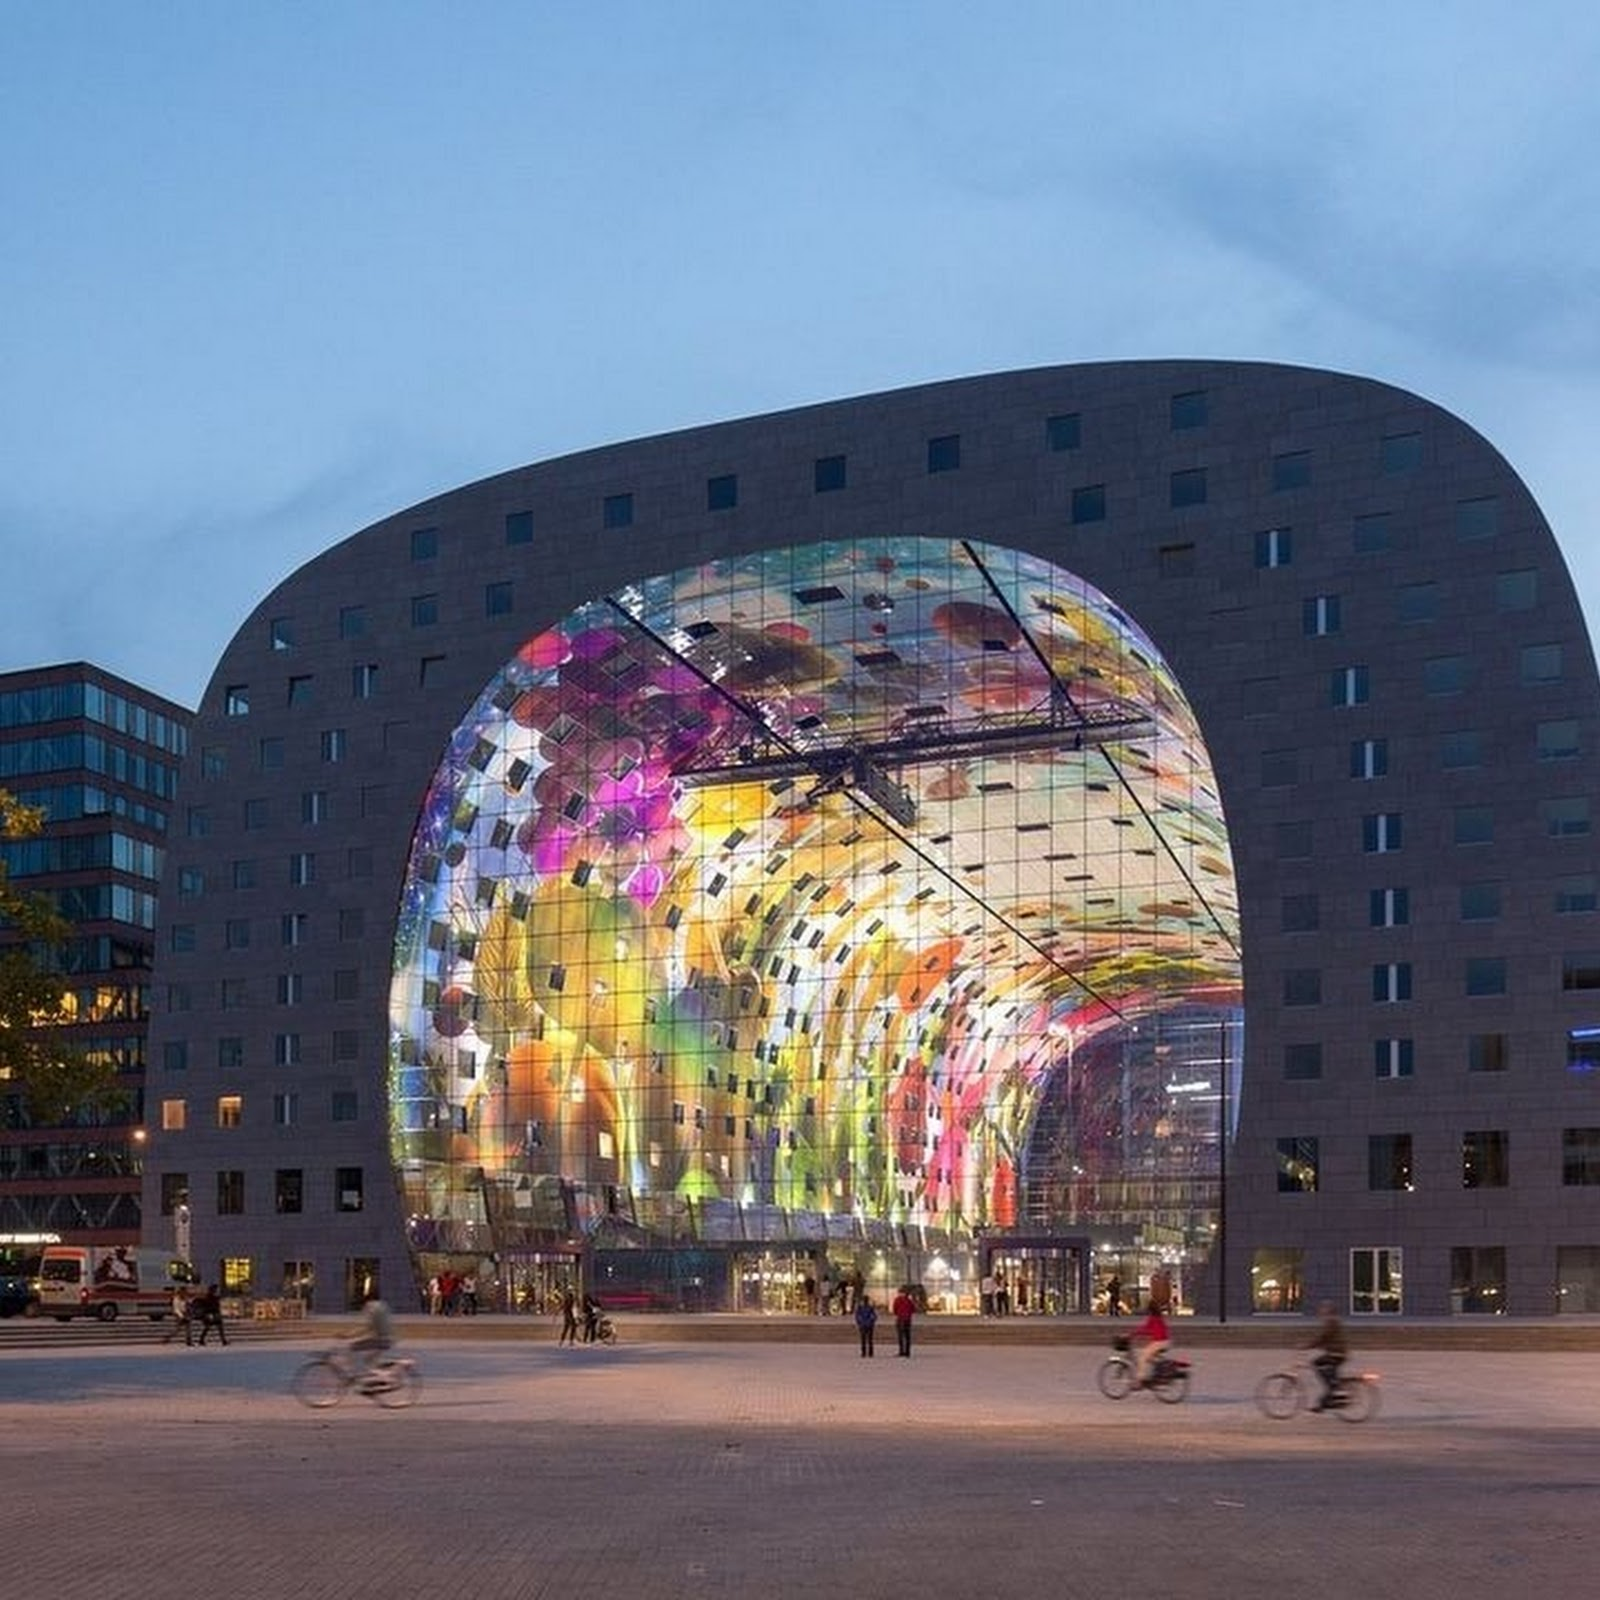 Markthal: Rotterdam's Beautiful Food Market